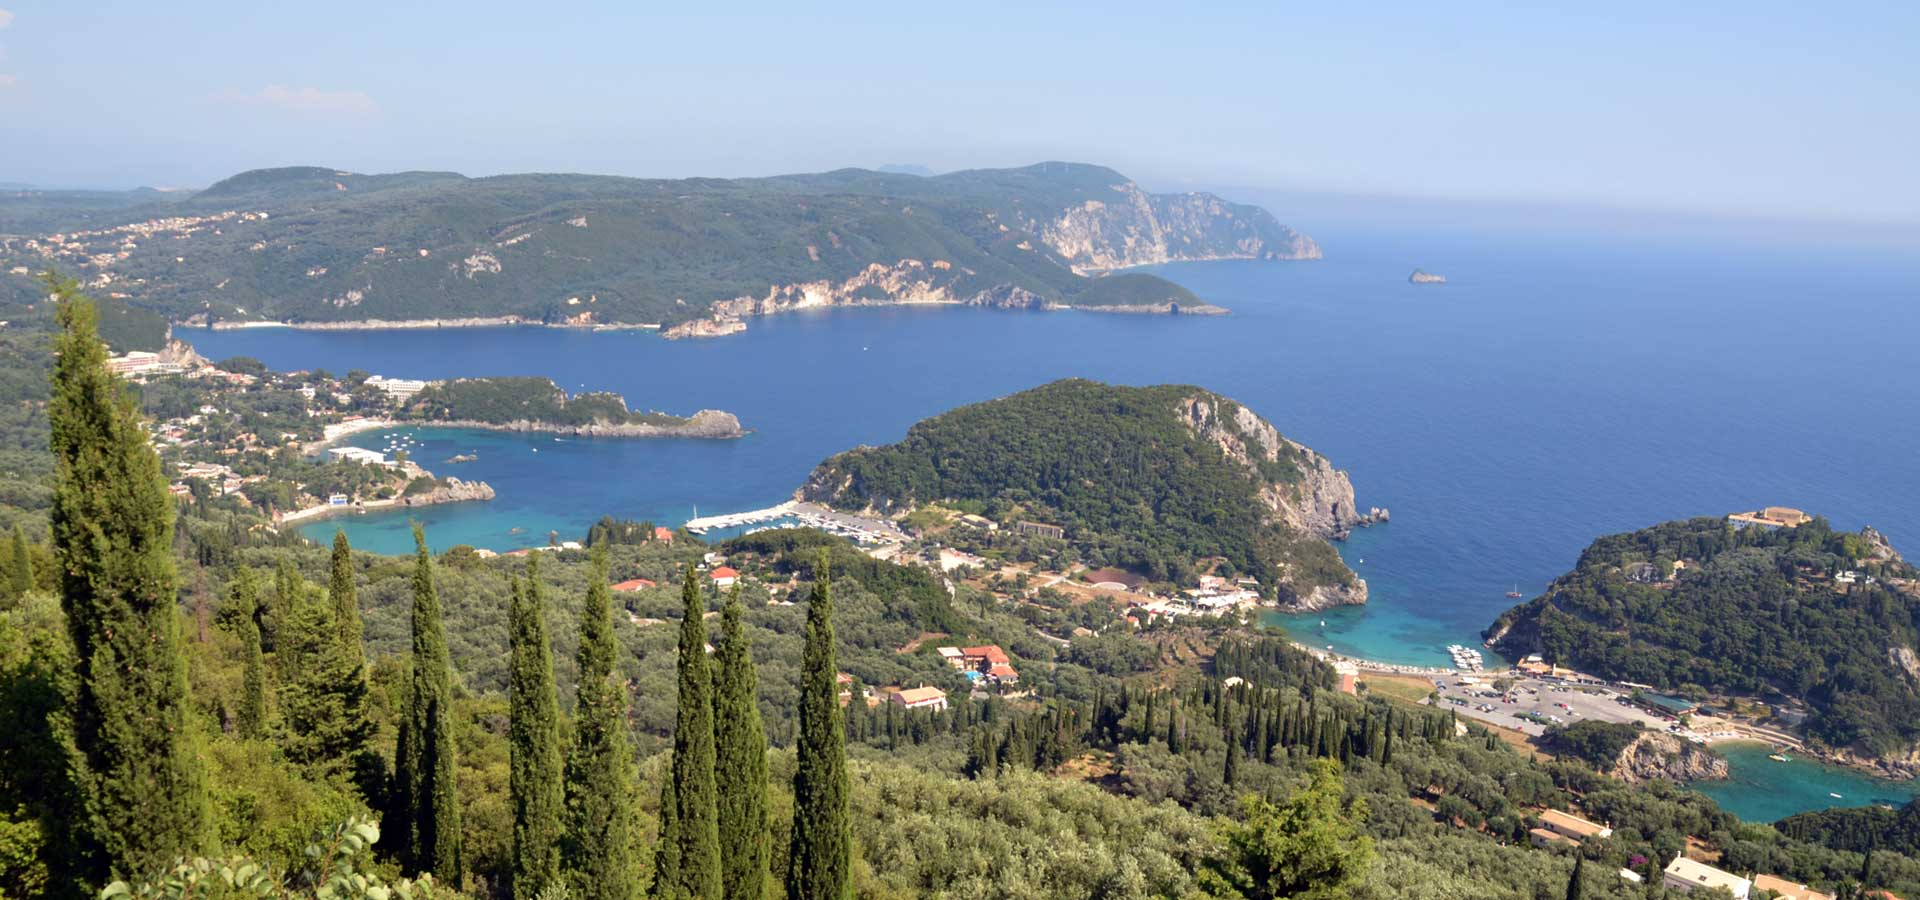 Sightseeing tour in Paleokastritsa and Kanoni.